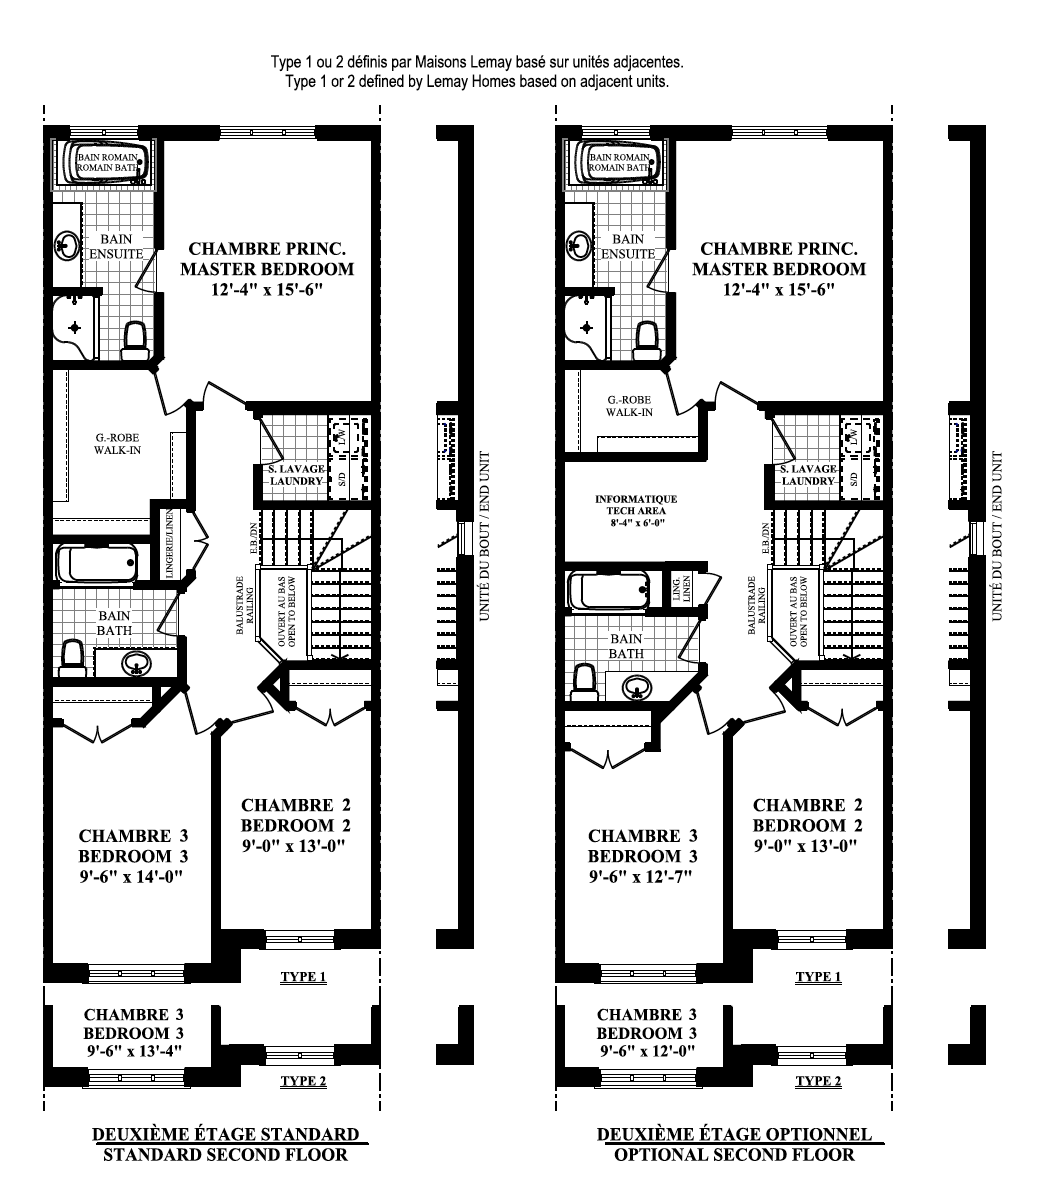 Lotus Second Floor Floorplan